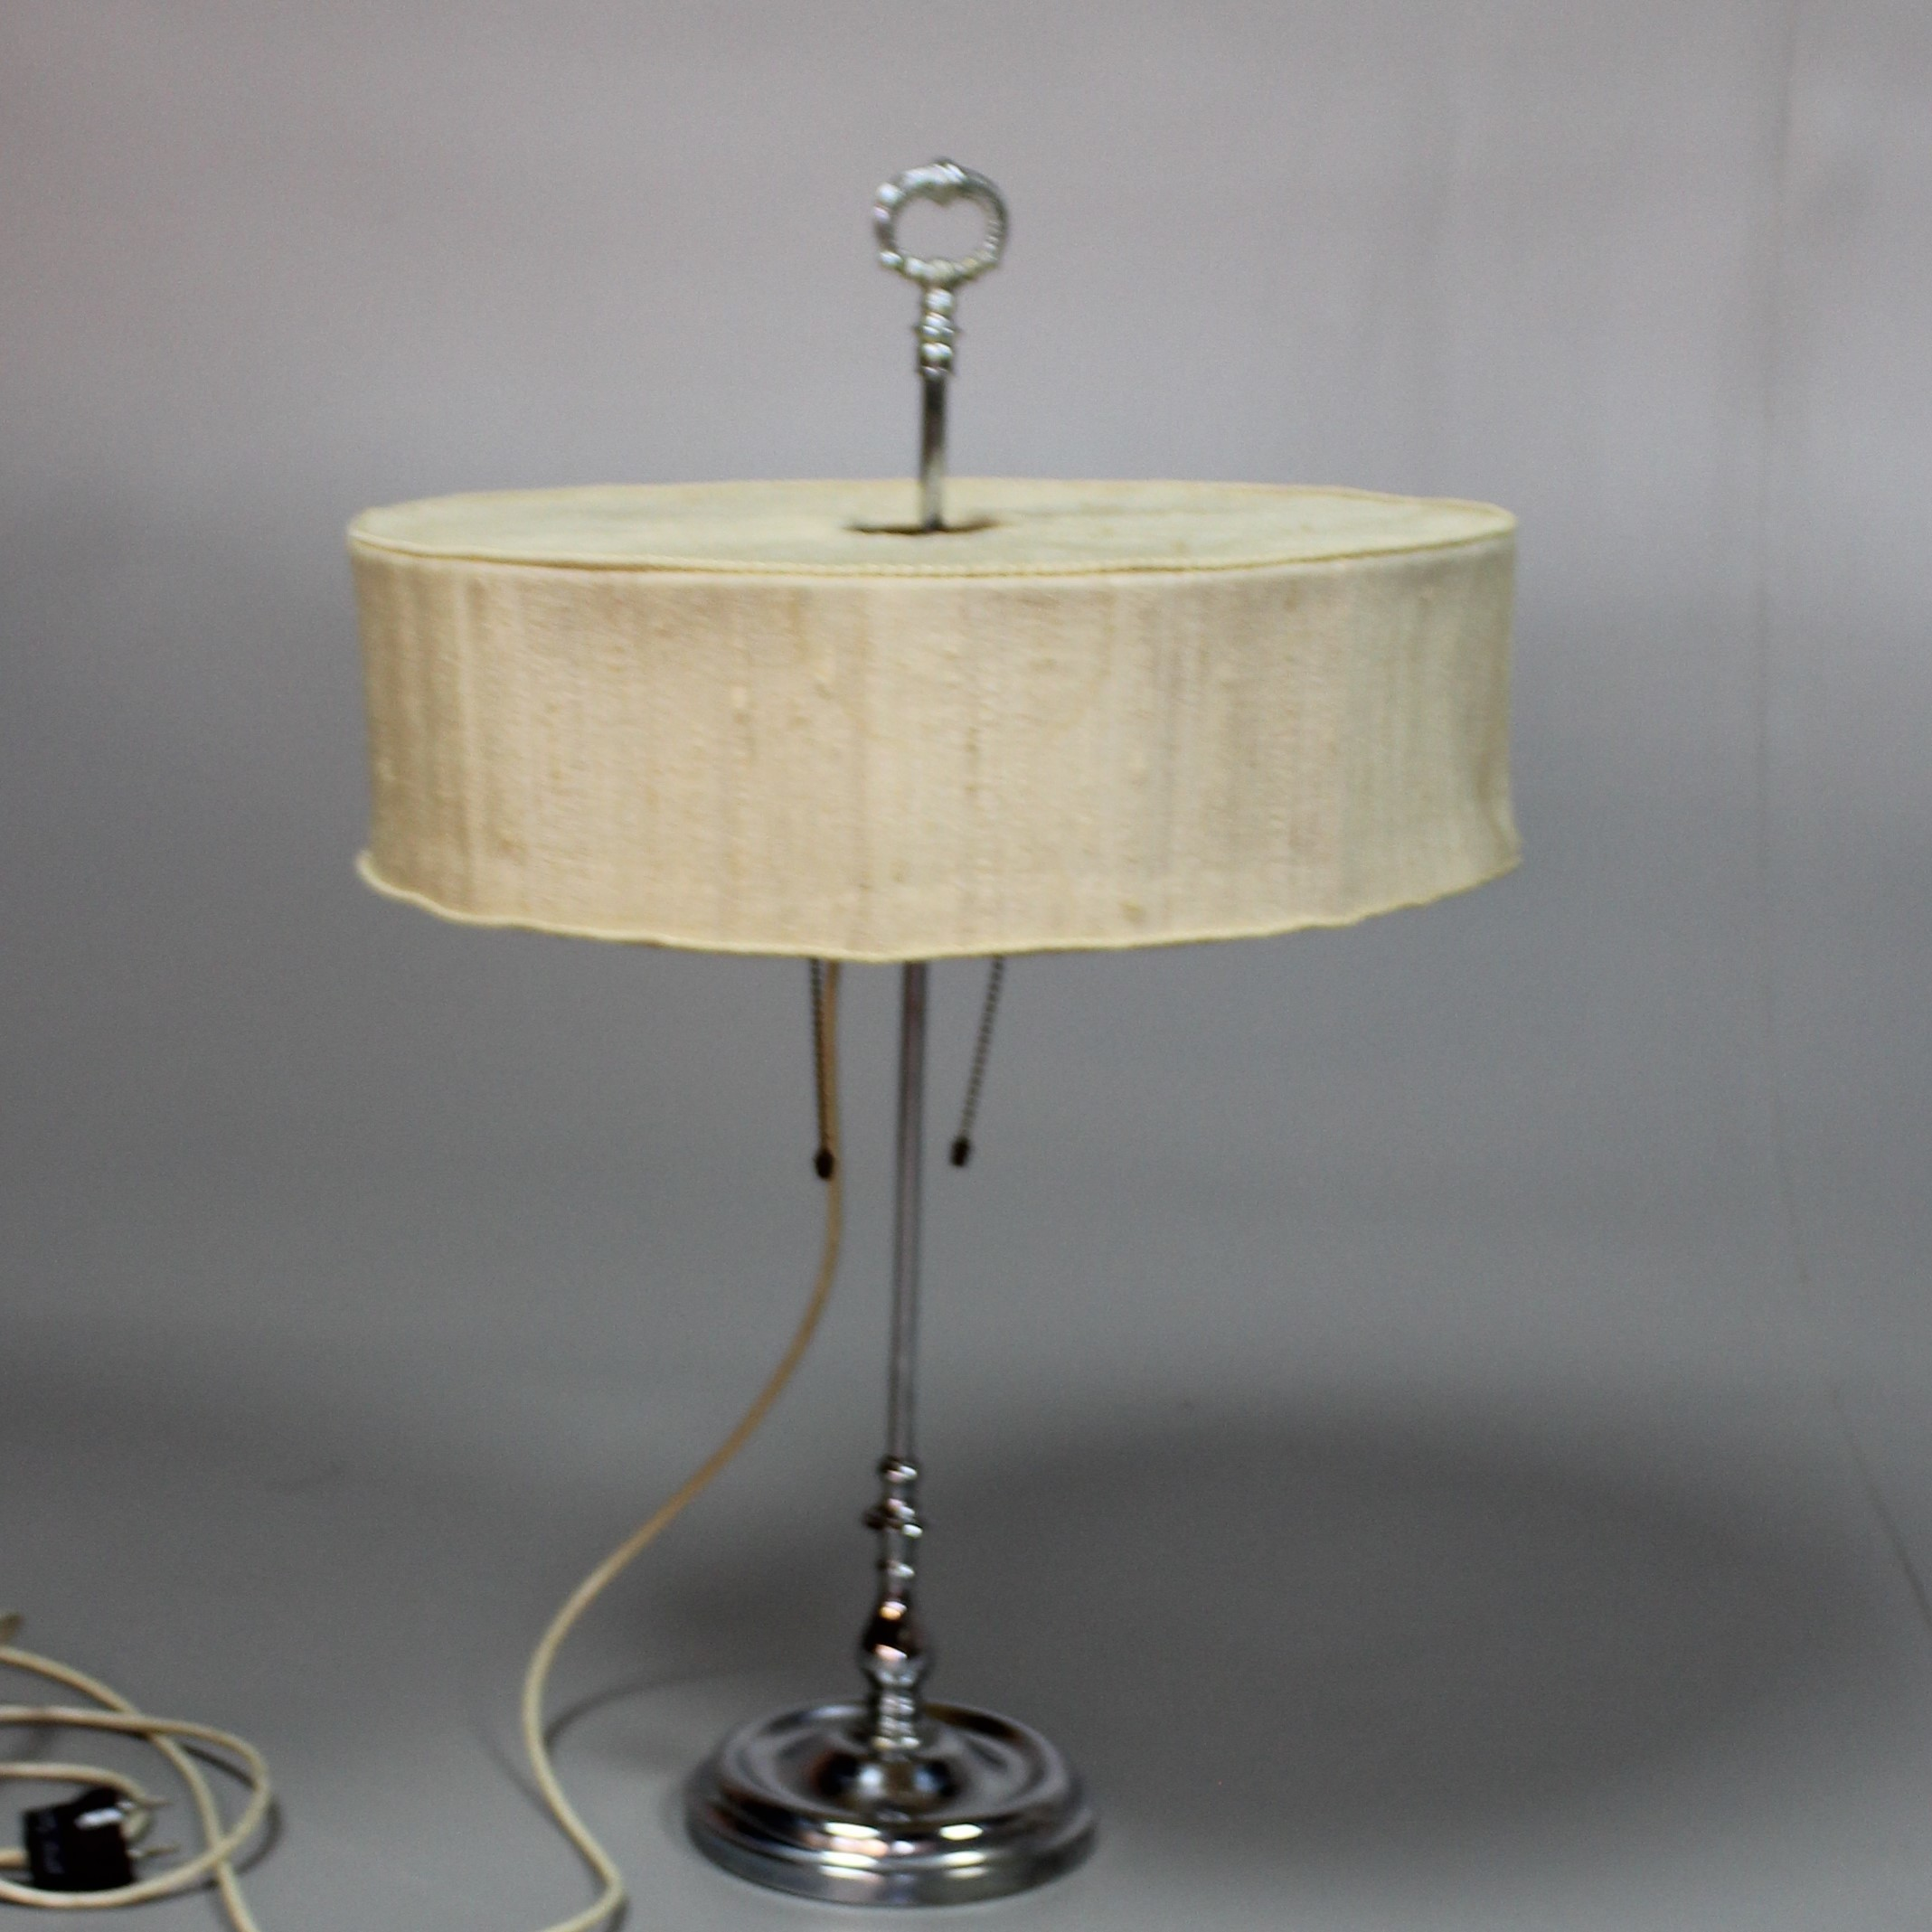 BORDSLAMPA Krom. Lighting & Lamps Table Lamps Auctionet